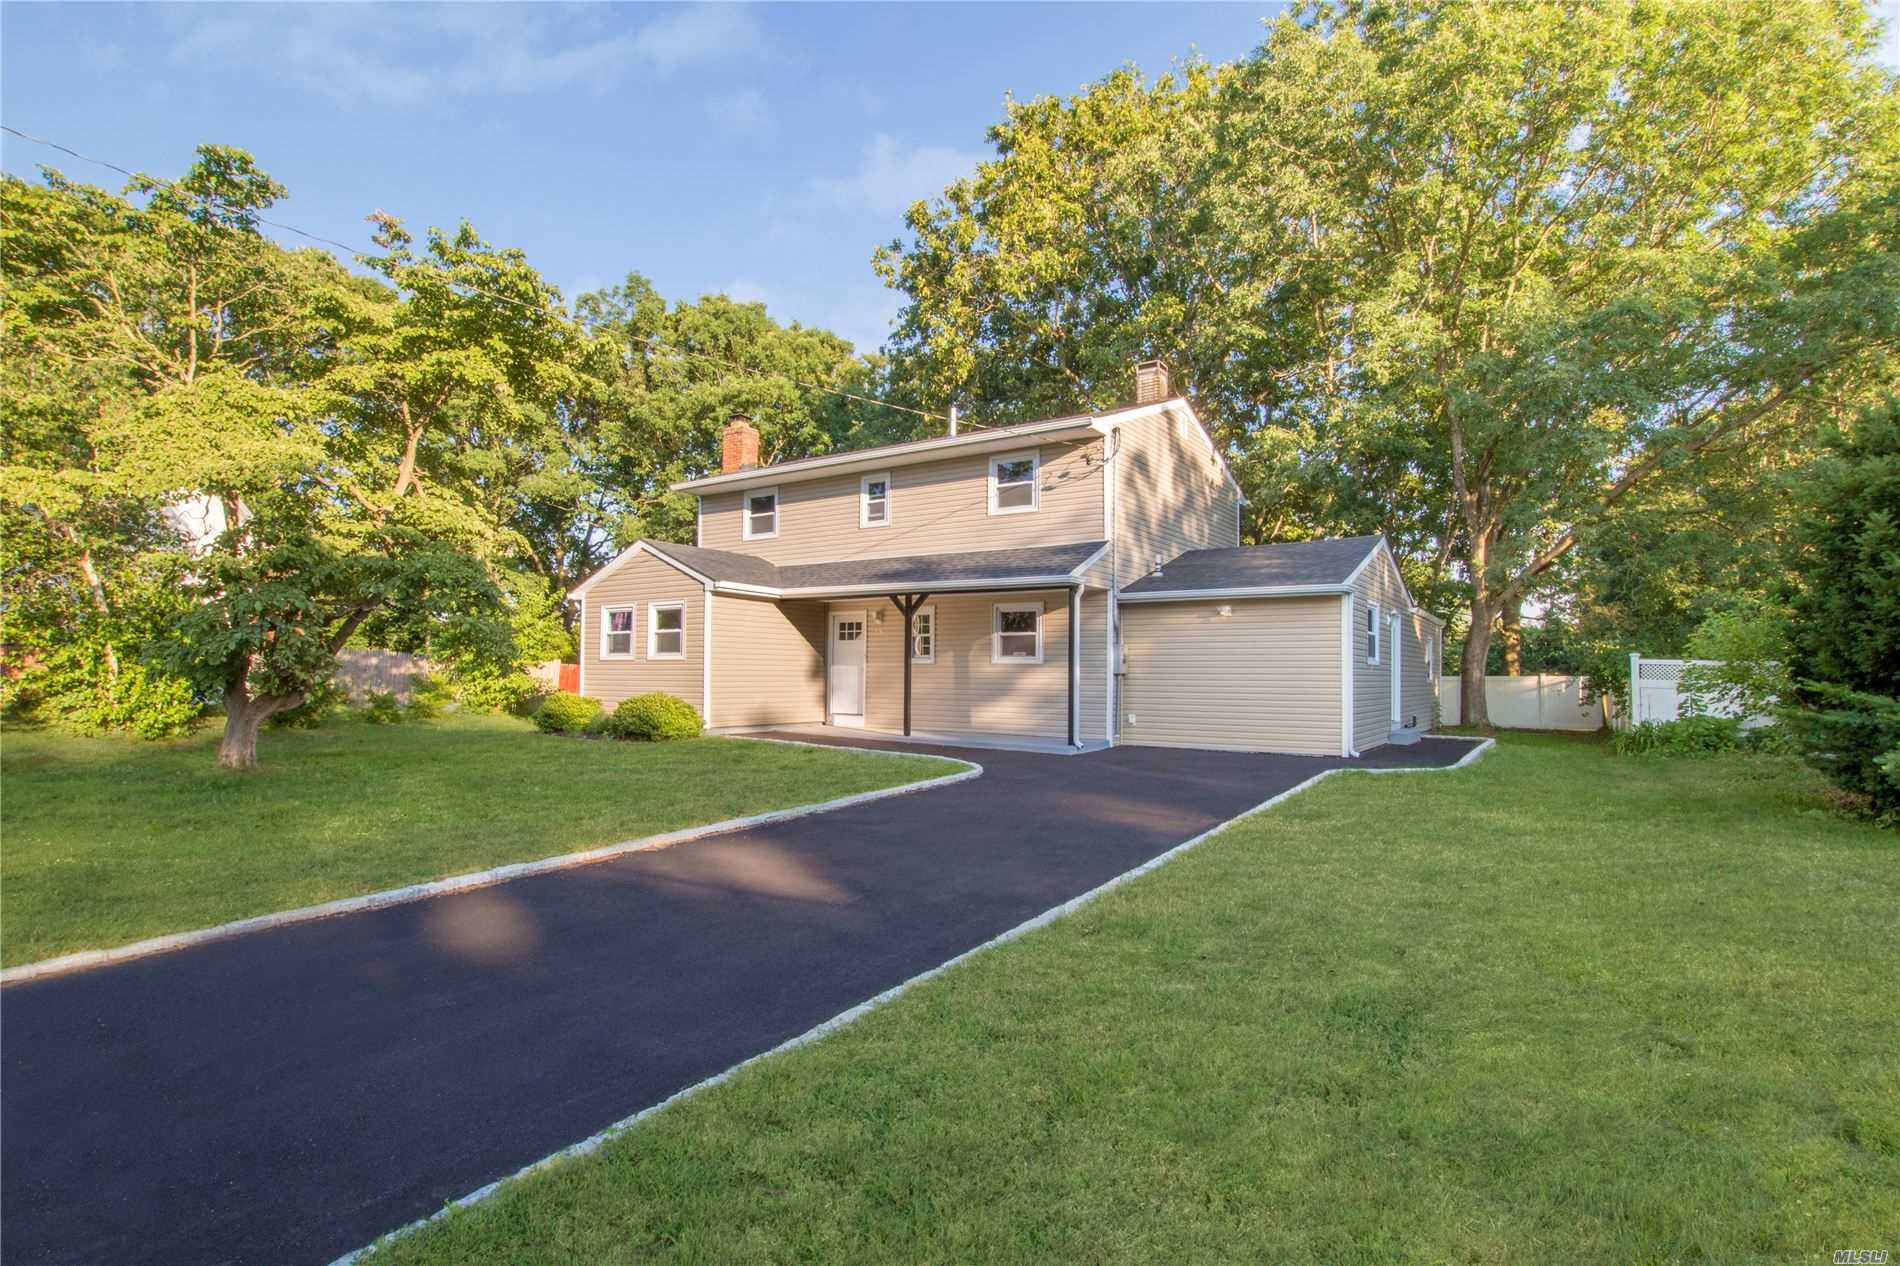 Stunning Large Colonial Completely Renovated & Remolded From top to bottom. Do not miss out on this 4/5 Bedroom 3.5 Bath Home With a Large Flowing Design with NEW Everything . Possible mother daughter with proper permits large yard & patio for entertaining plenty of space perfect Location.